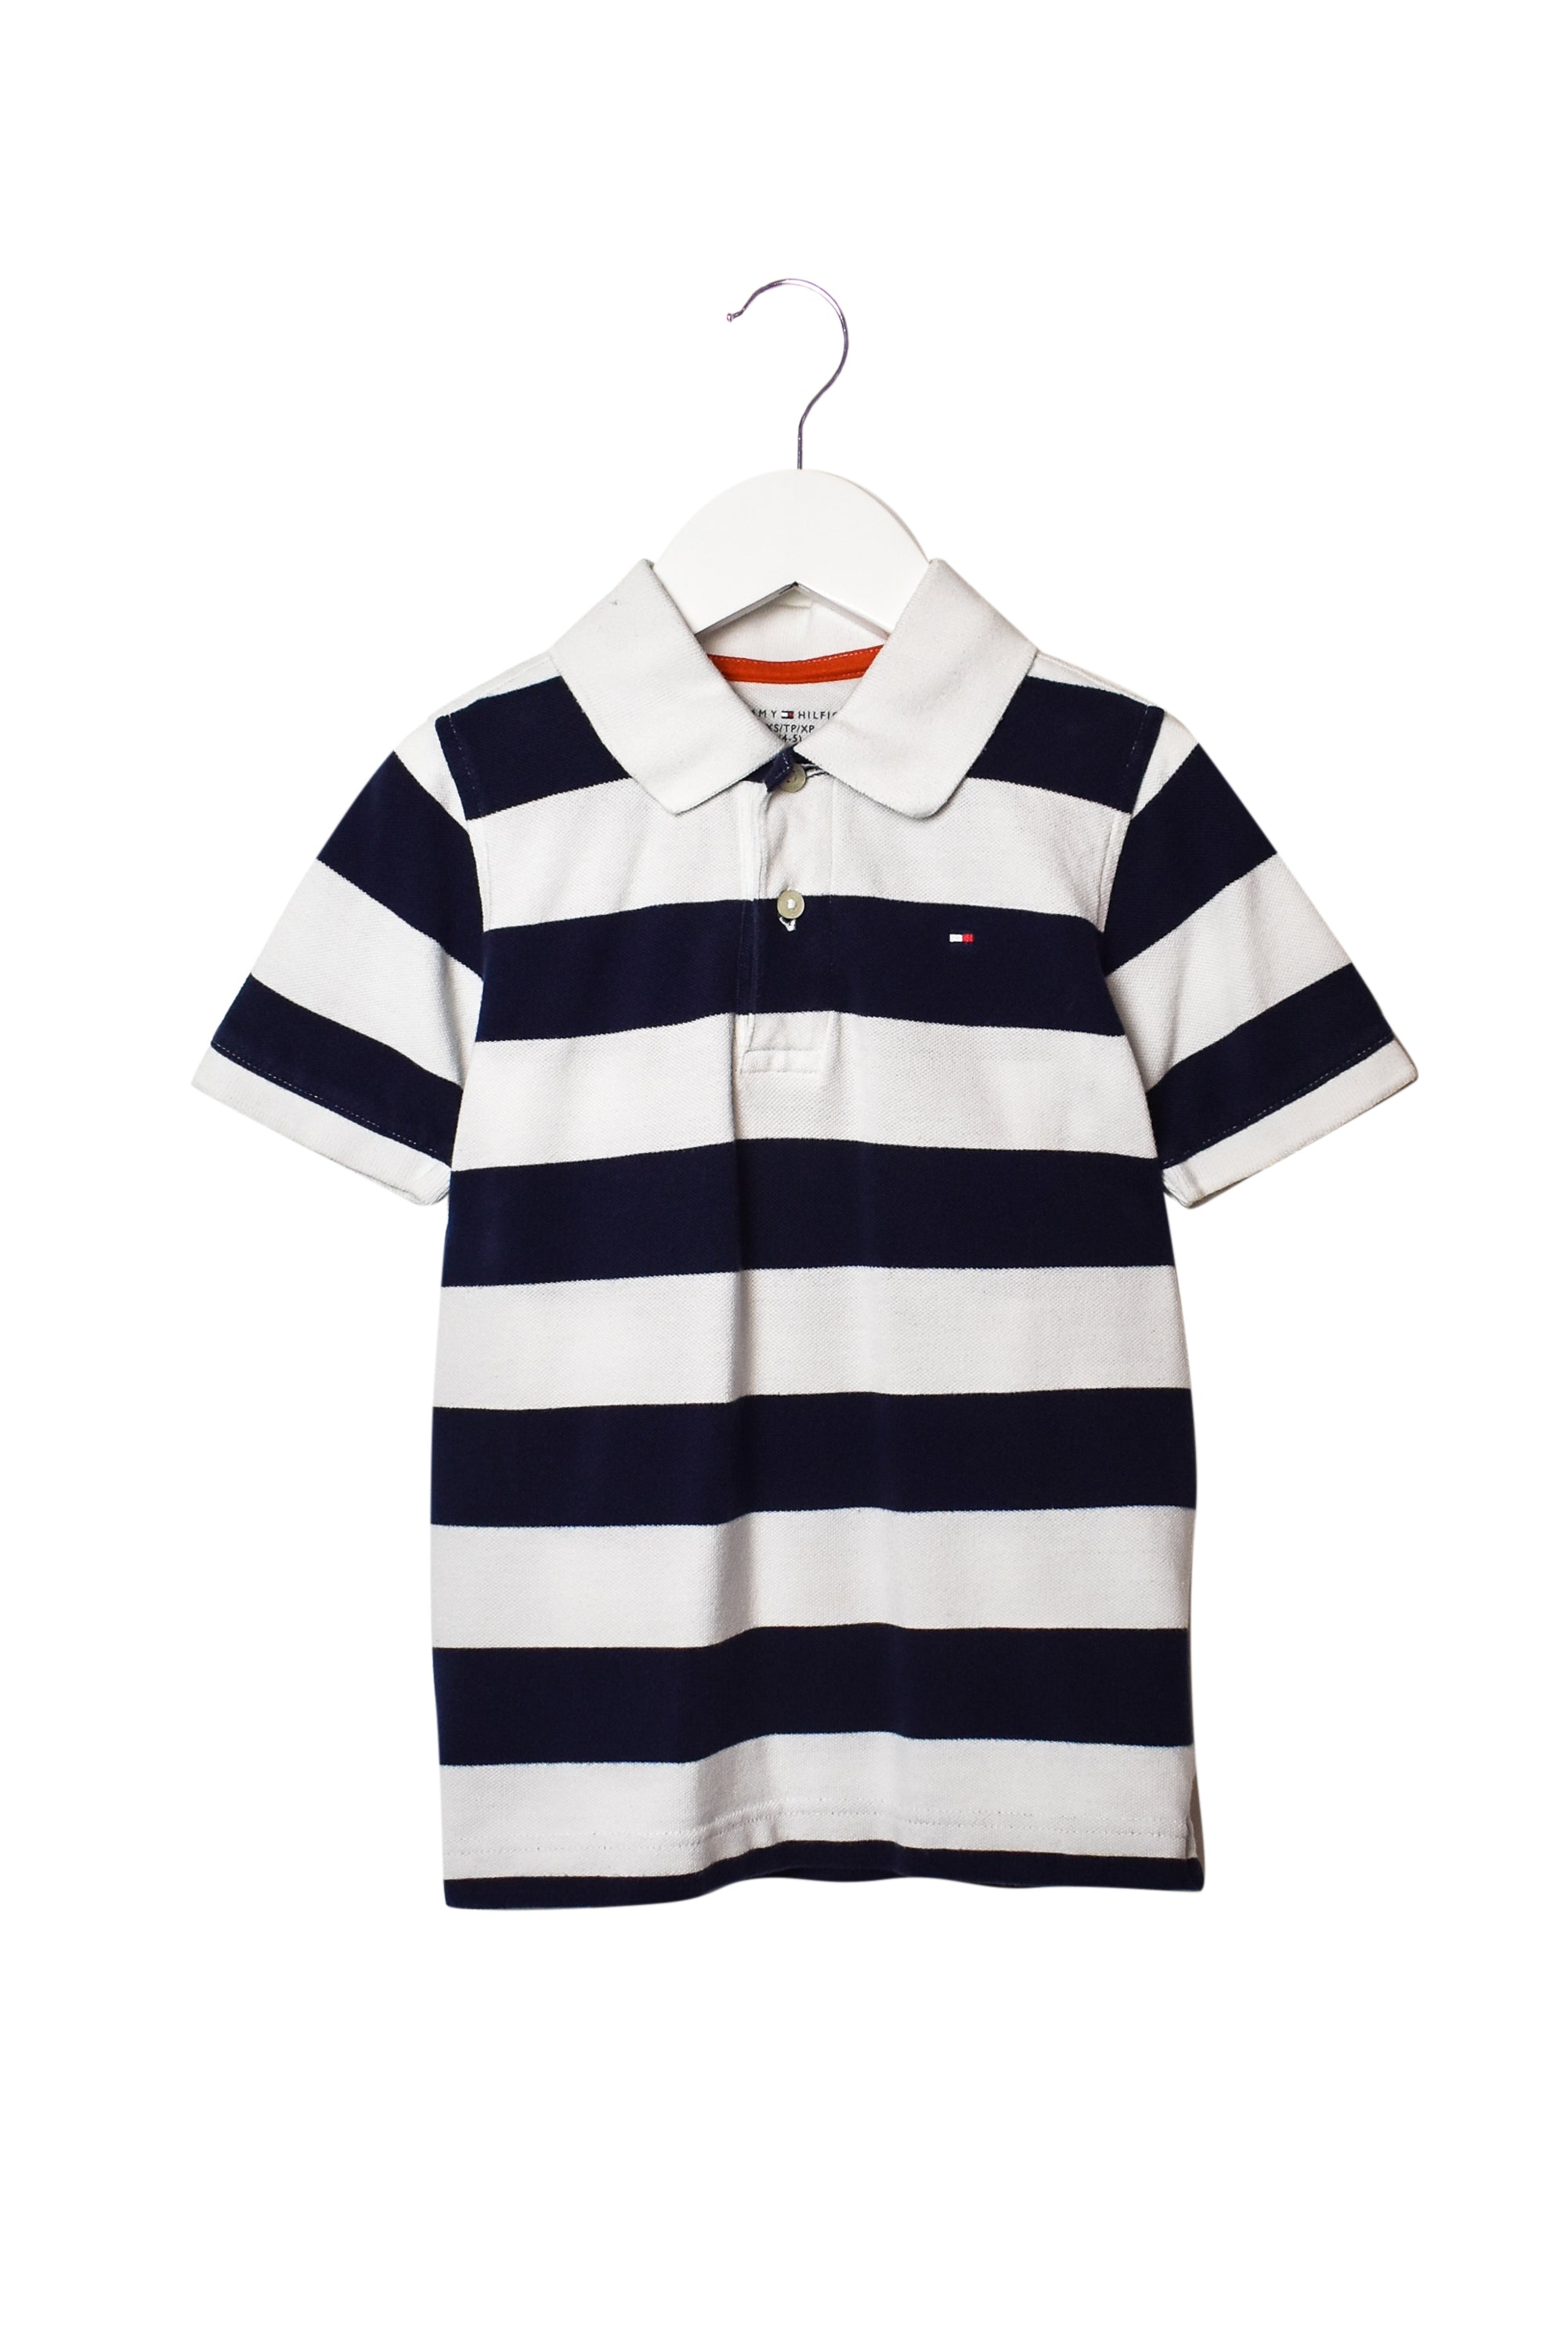 2d28b9d09 10008722 Tommy Hilfiger Kids~ Polo XS (4-5T) at Retykle